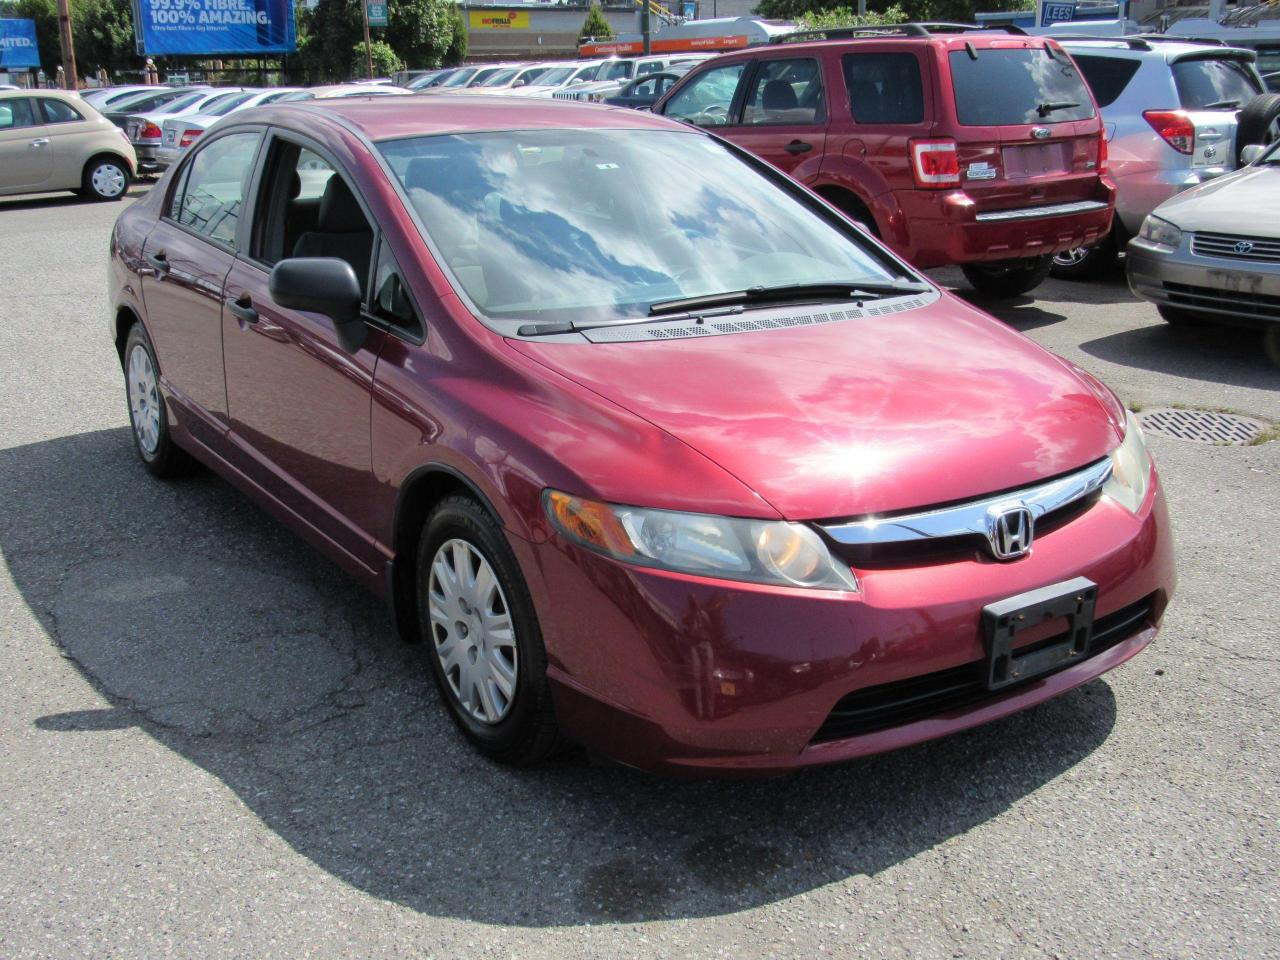 used 2007 honda civic dx-g for sale in vancouver, british columbia carpages.ca